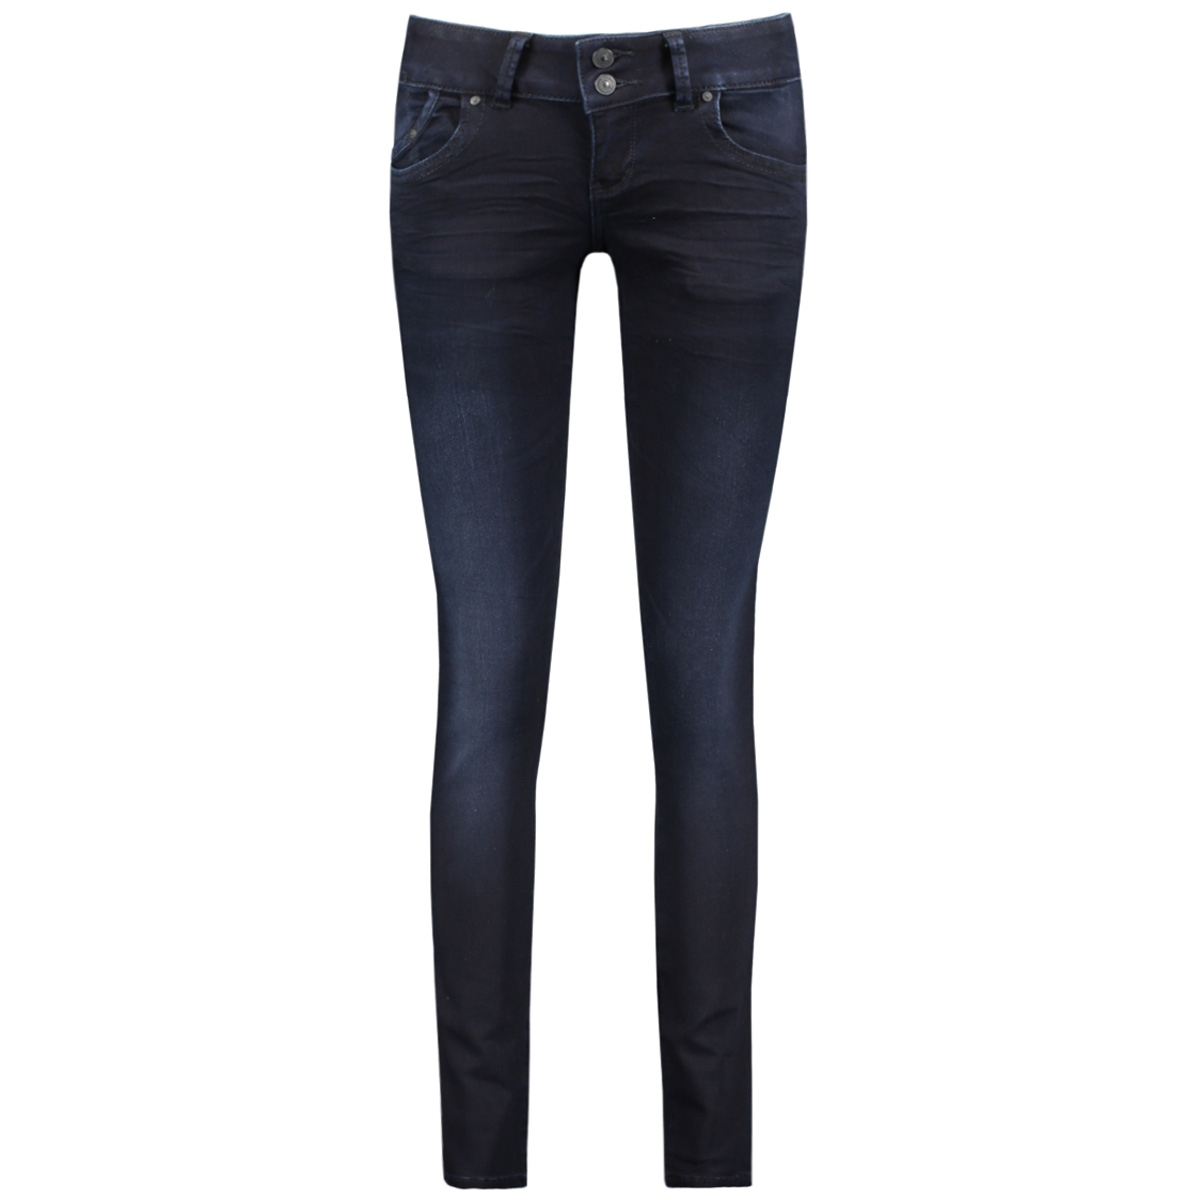 10095061813645 ltb jeans parvin wash 51272